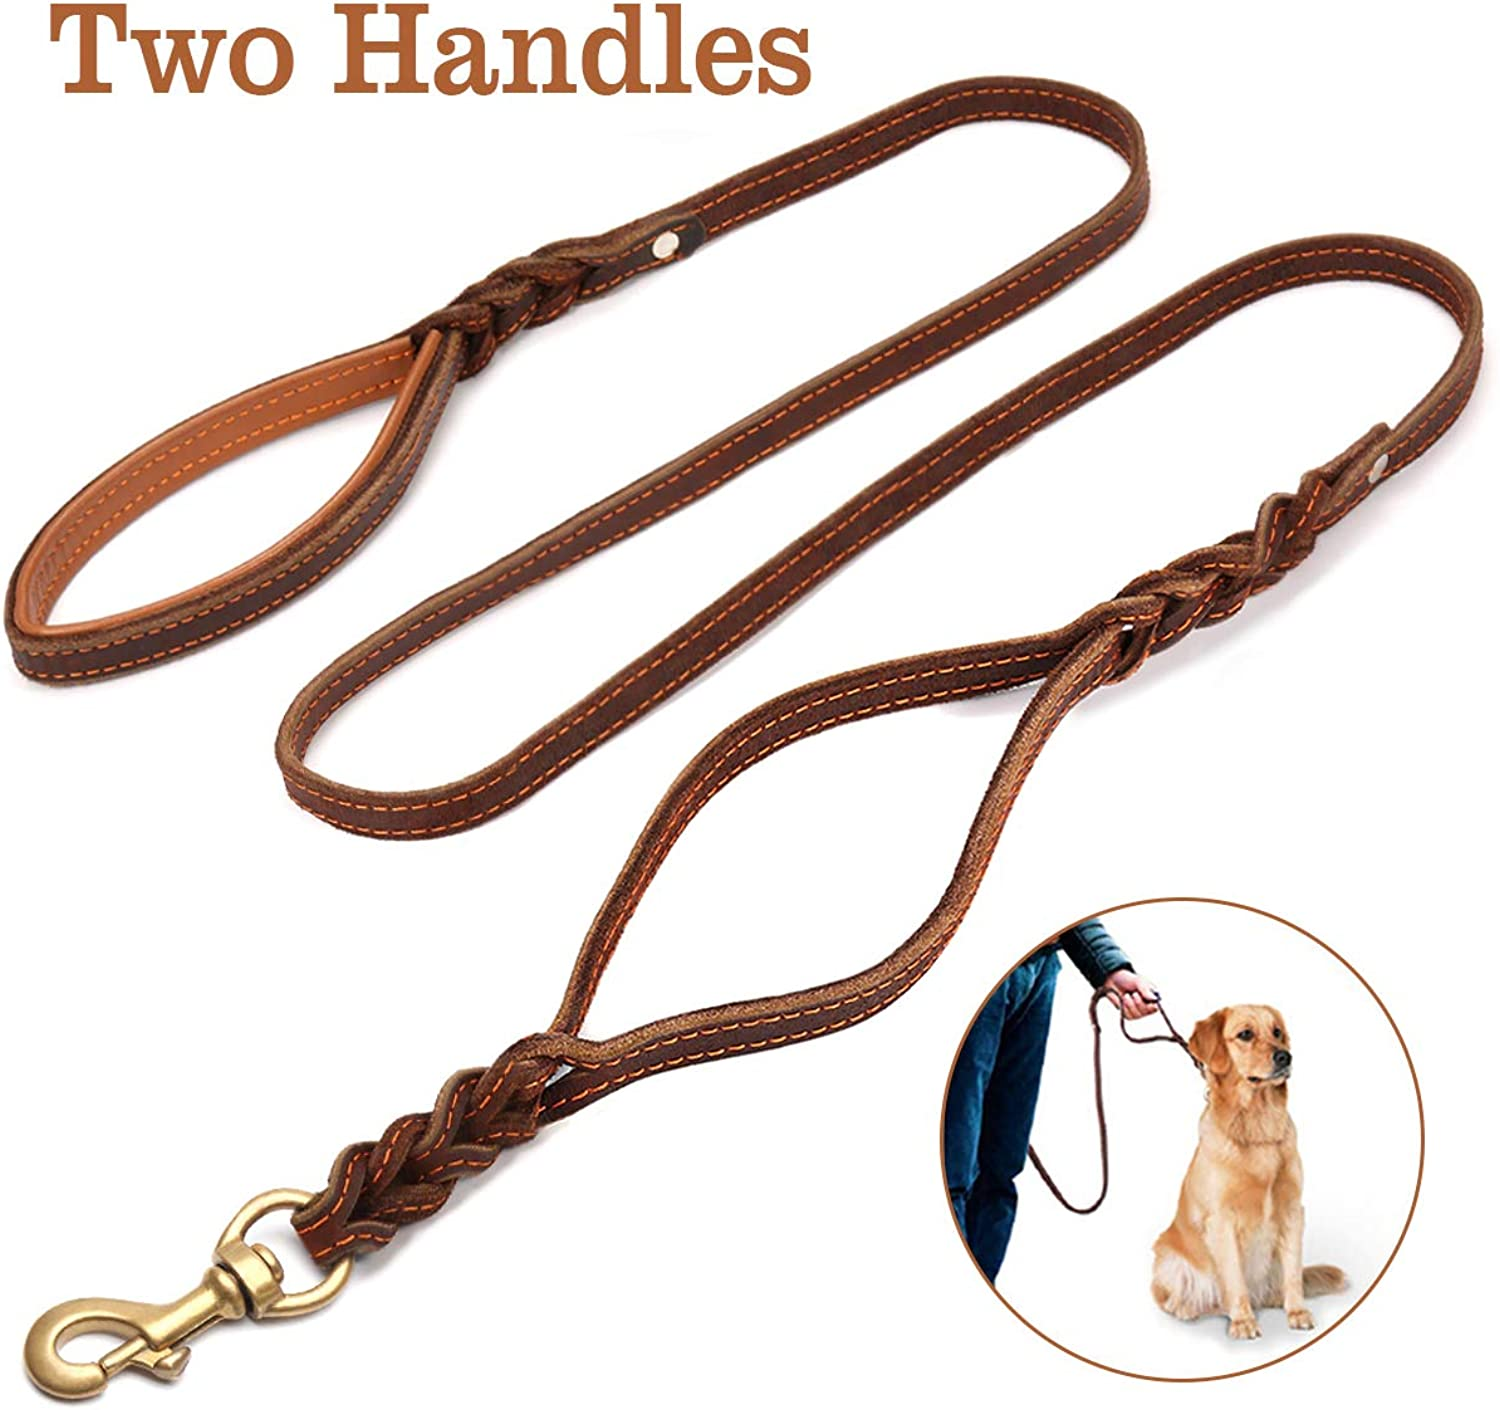 FOCUSPET Heavy Duty Leather Dog Leash with 2 Handles,Padded Traffic Handle for Extra Control,6Ft Dog Training Walking Leashes for Medium Large Dogs